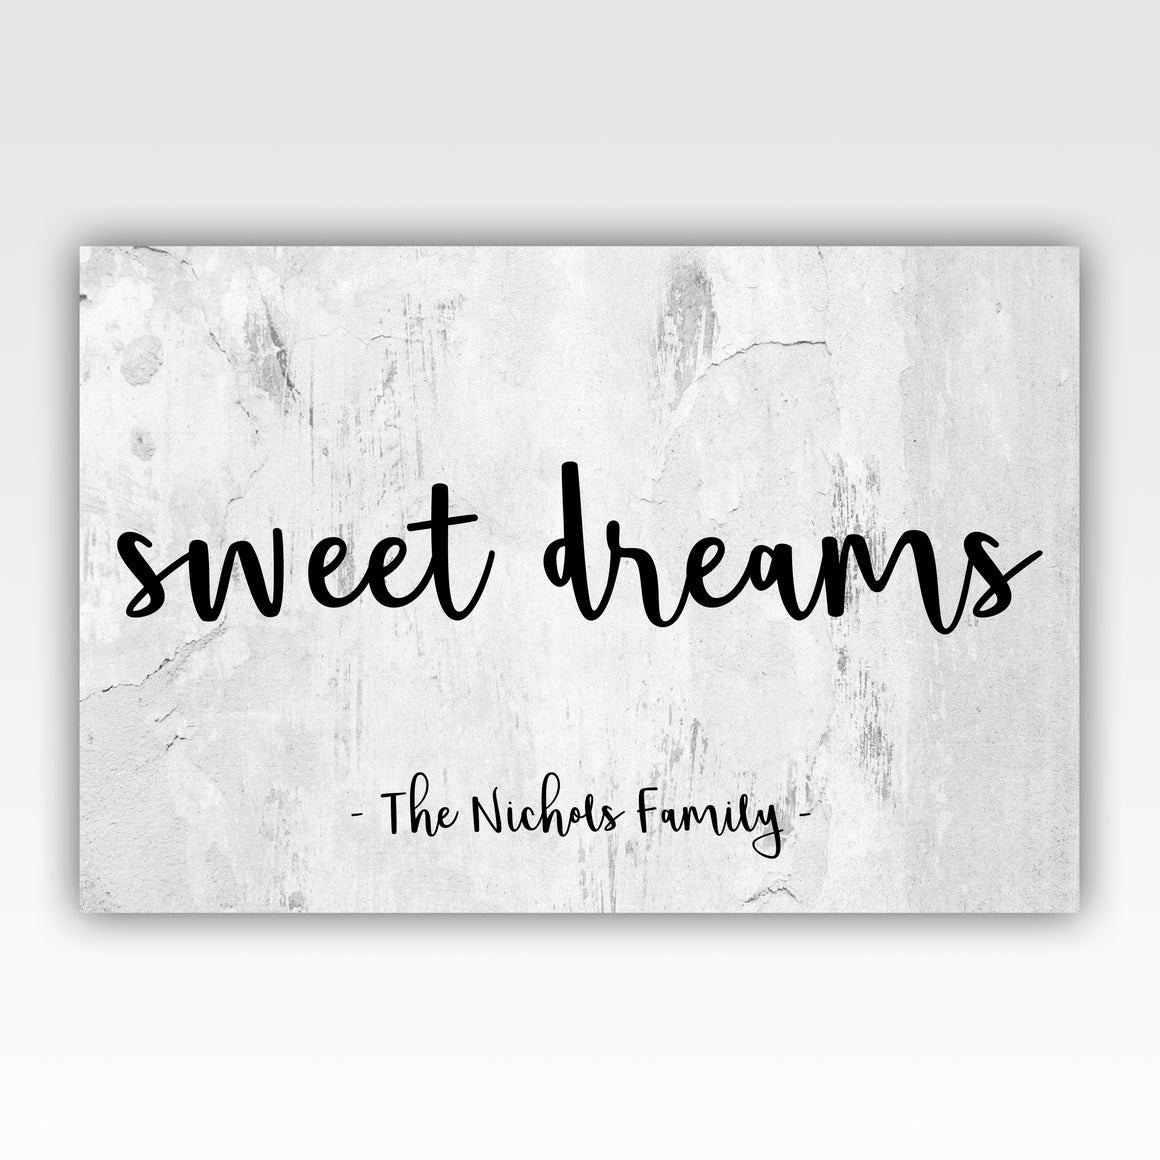 Personalized!! Sweet Dreams Family Artwork Canvas Home Decor Gift